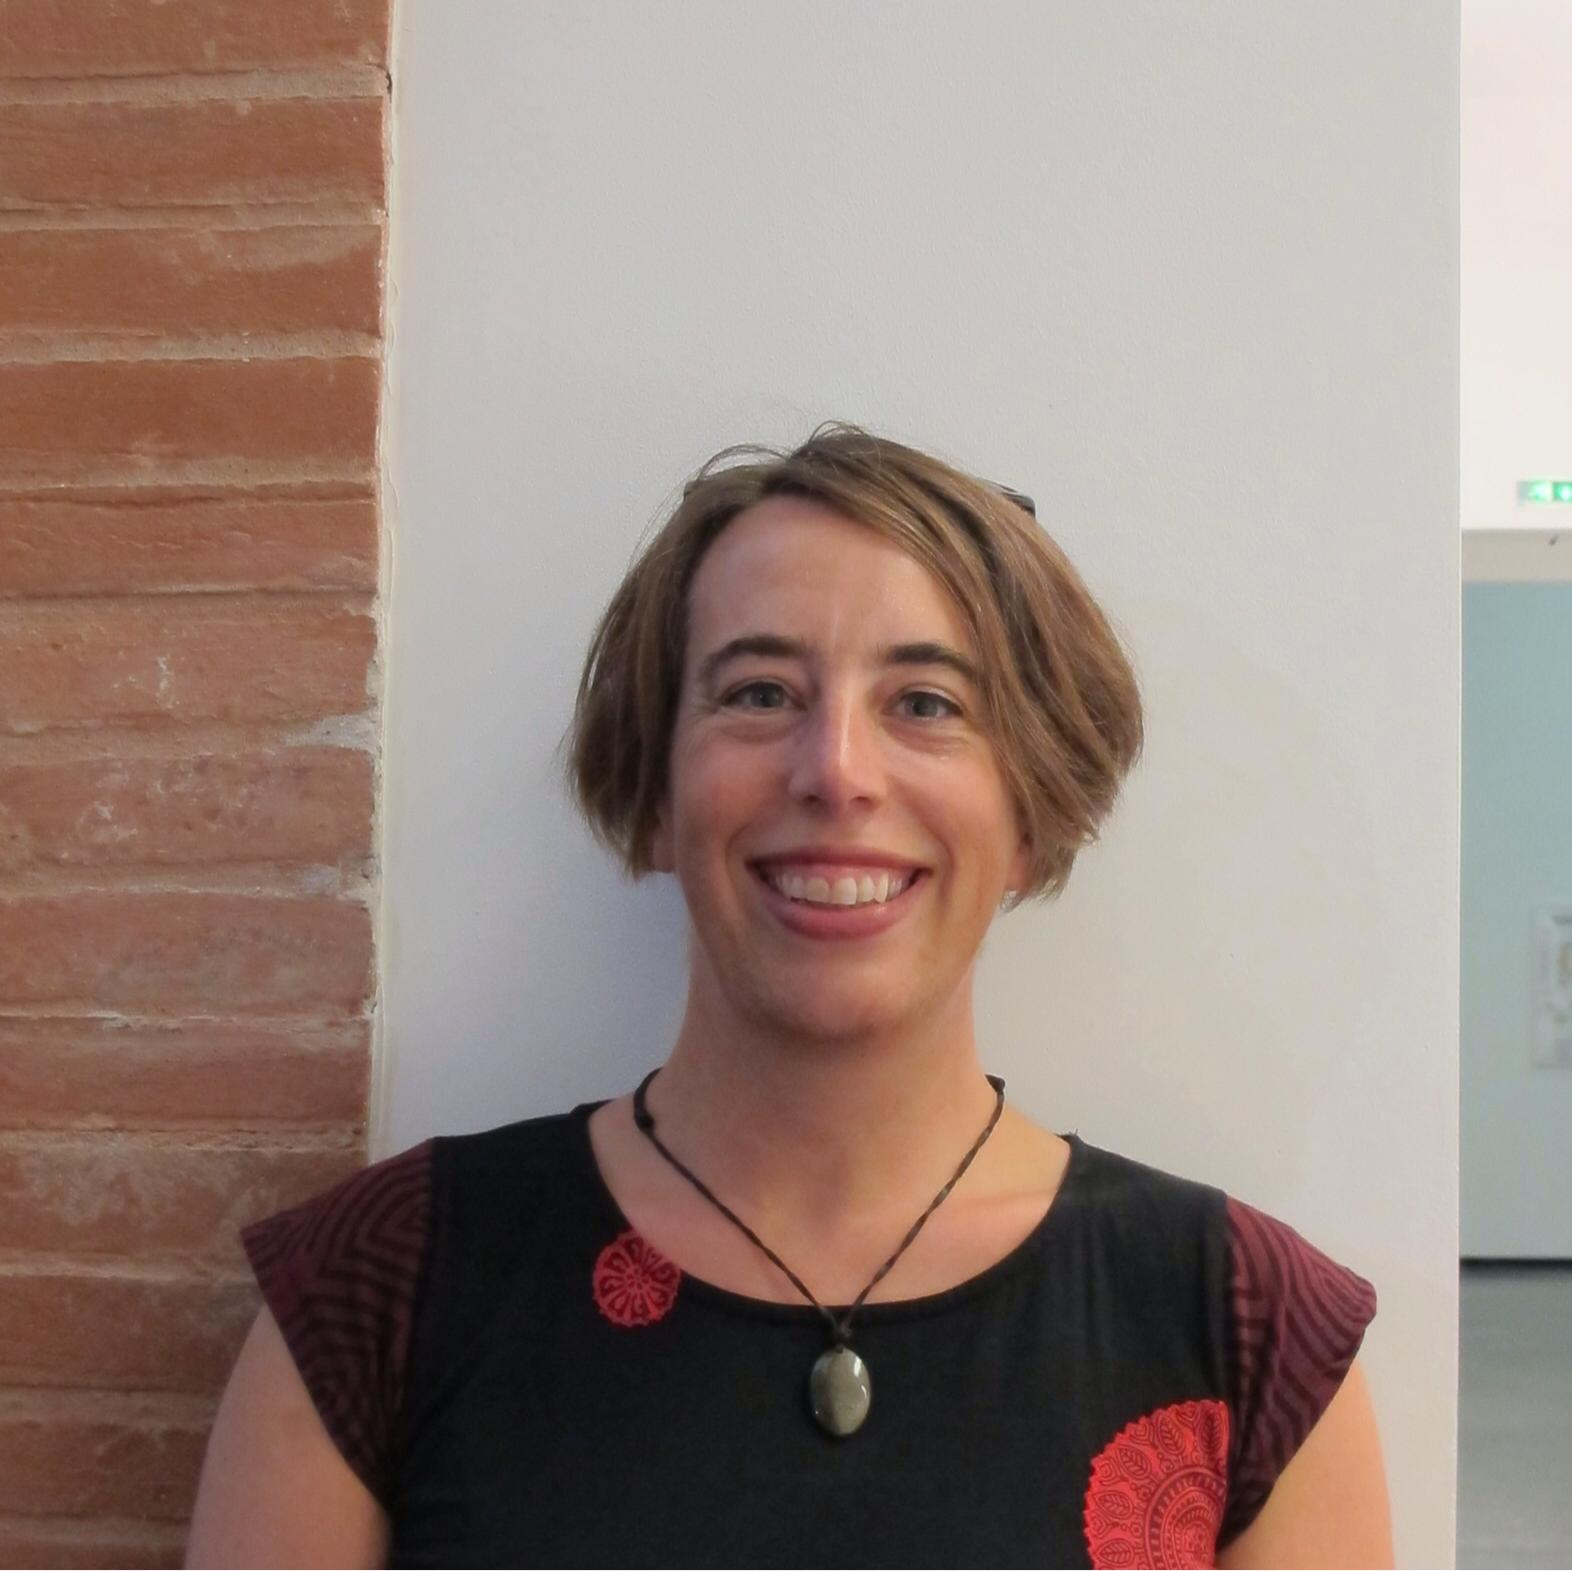 FRANCES ANDERSON - Artist, Photographer, Filmmaker & Designer - Frances is an award winning visual artist who works across printmaking, film, textiles, photography, installations, kites and kinetic art.She is also a Channel swimmer, swimming the English Channel in 2008 and the Gibraltar Strait in 2015. Her swim experiences and relationship to water influence her work. Frances regularly exhibits her work in the UK as well as internationally and her work is held in private collections across the world.Frances is also a member of the international artists collective Drachensyndikat who show their work internationally.